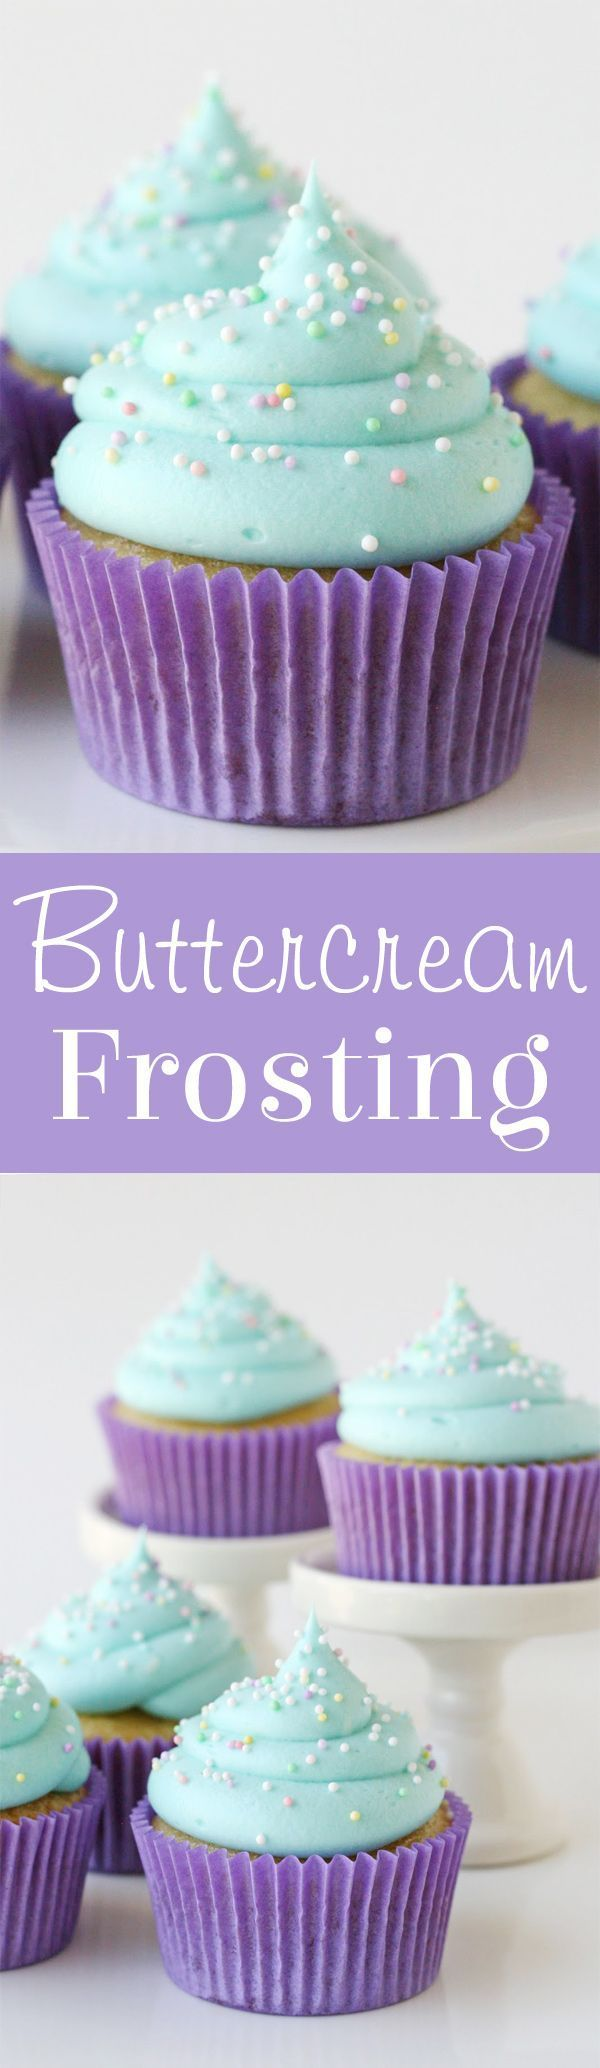 This classic American Buttercream Frosting is easy to make, delicious and perfect for frosting cakes, cupcakes and cookies!